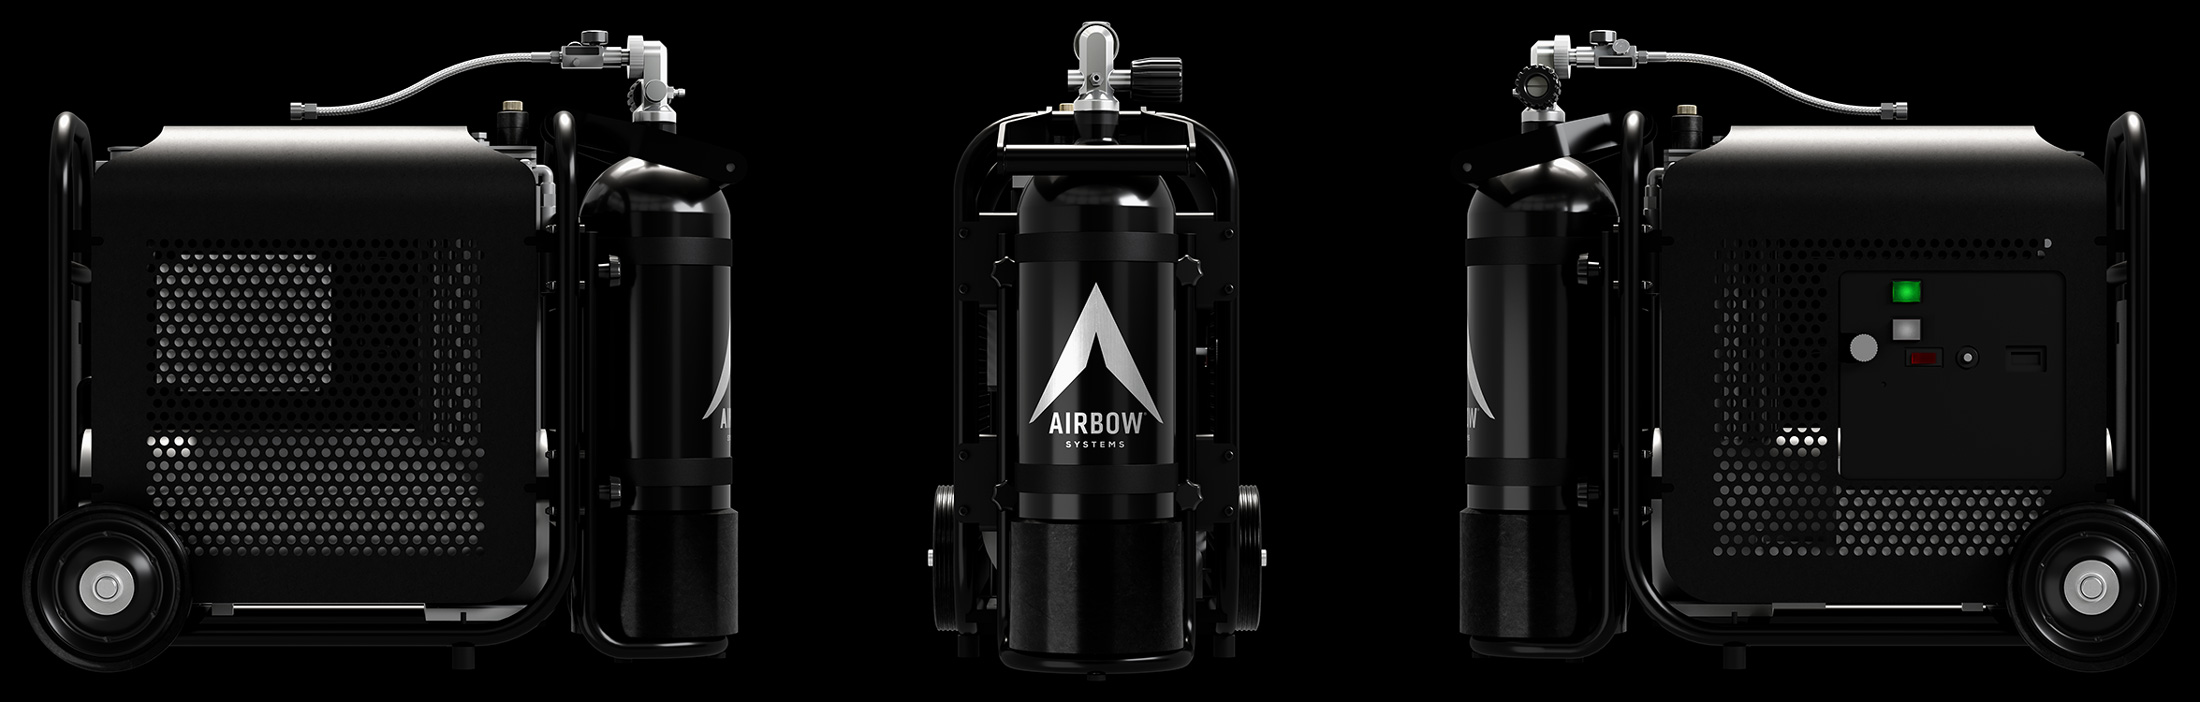 Airbow Compressor from different angles